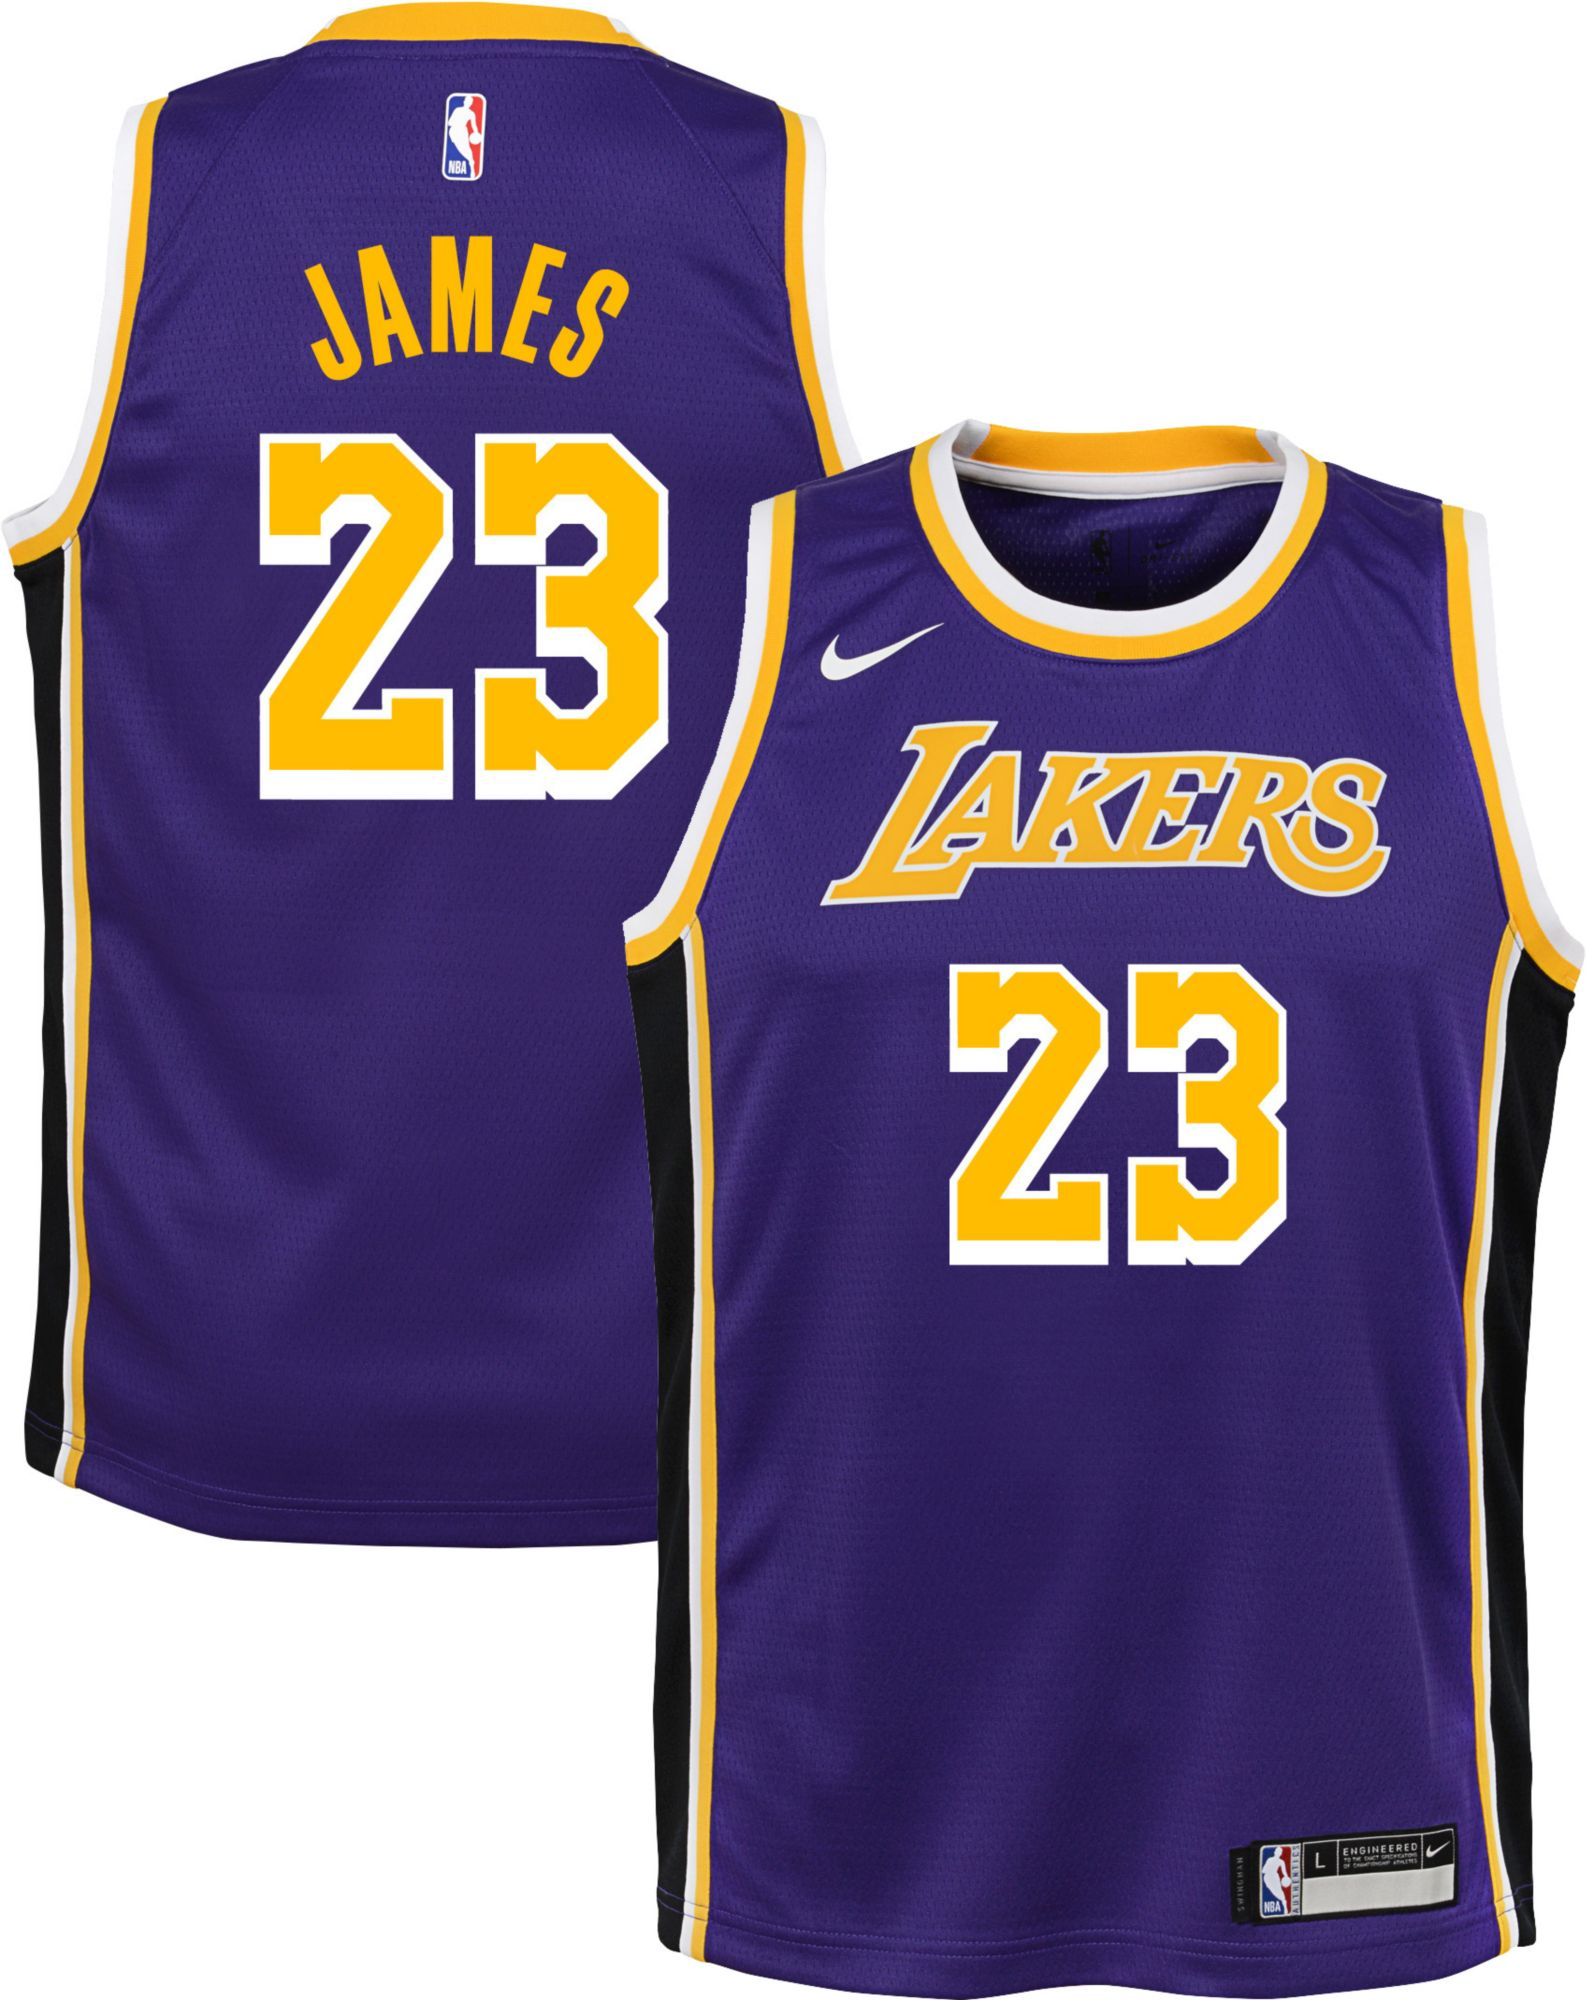 lebron james youth jersey lakers